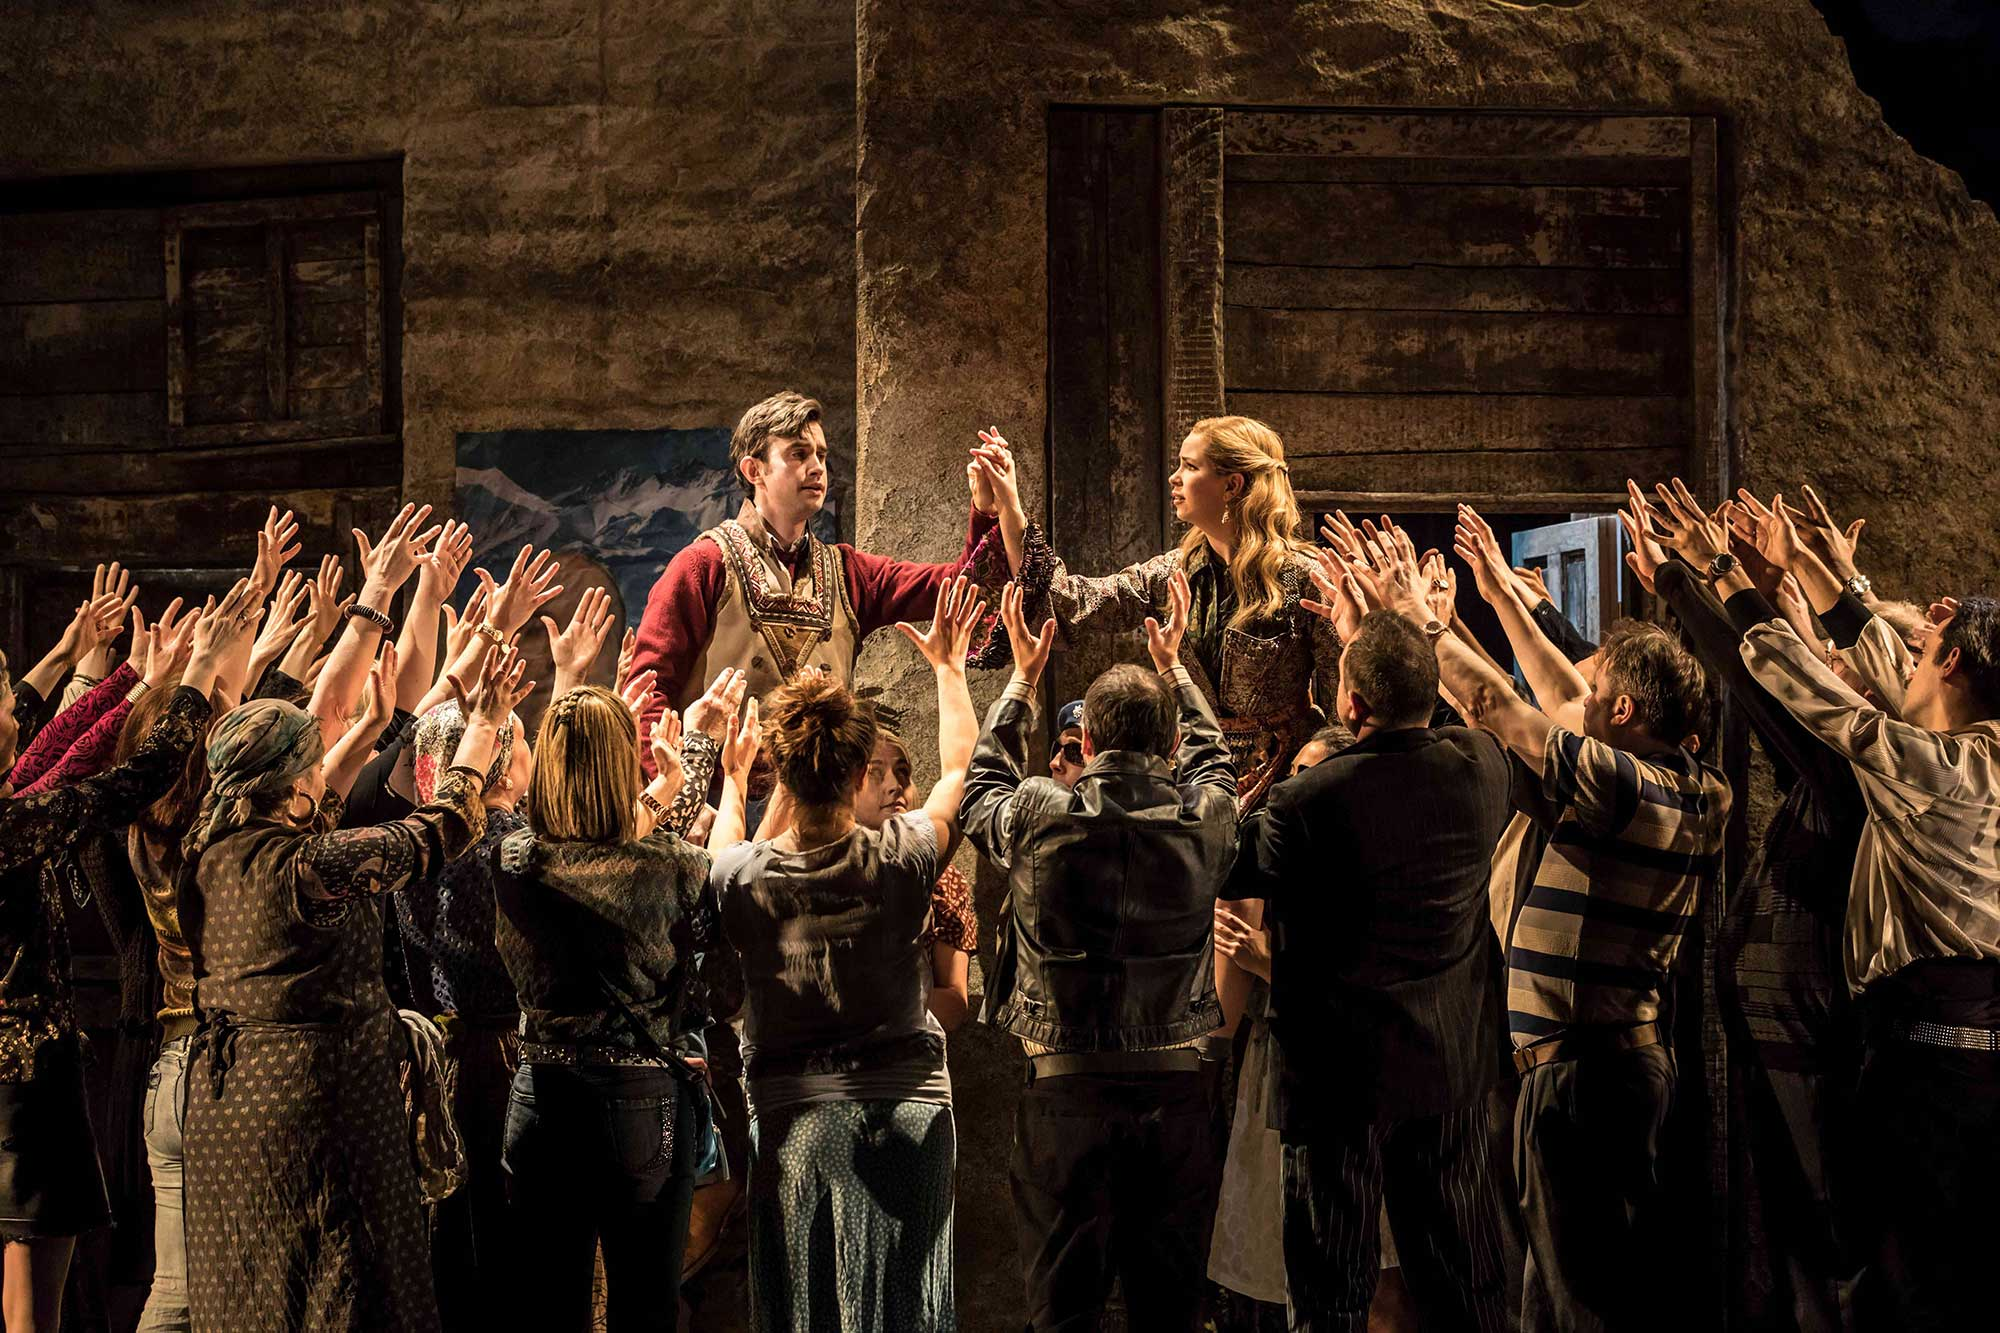 main characters in the winters tale are lifted up by the chorus on stage